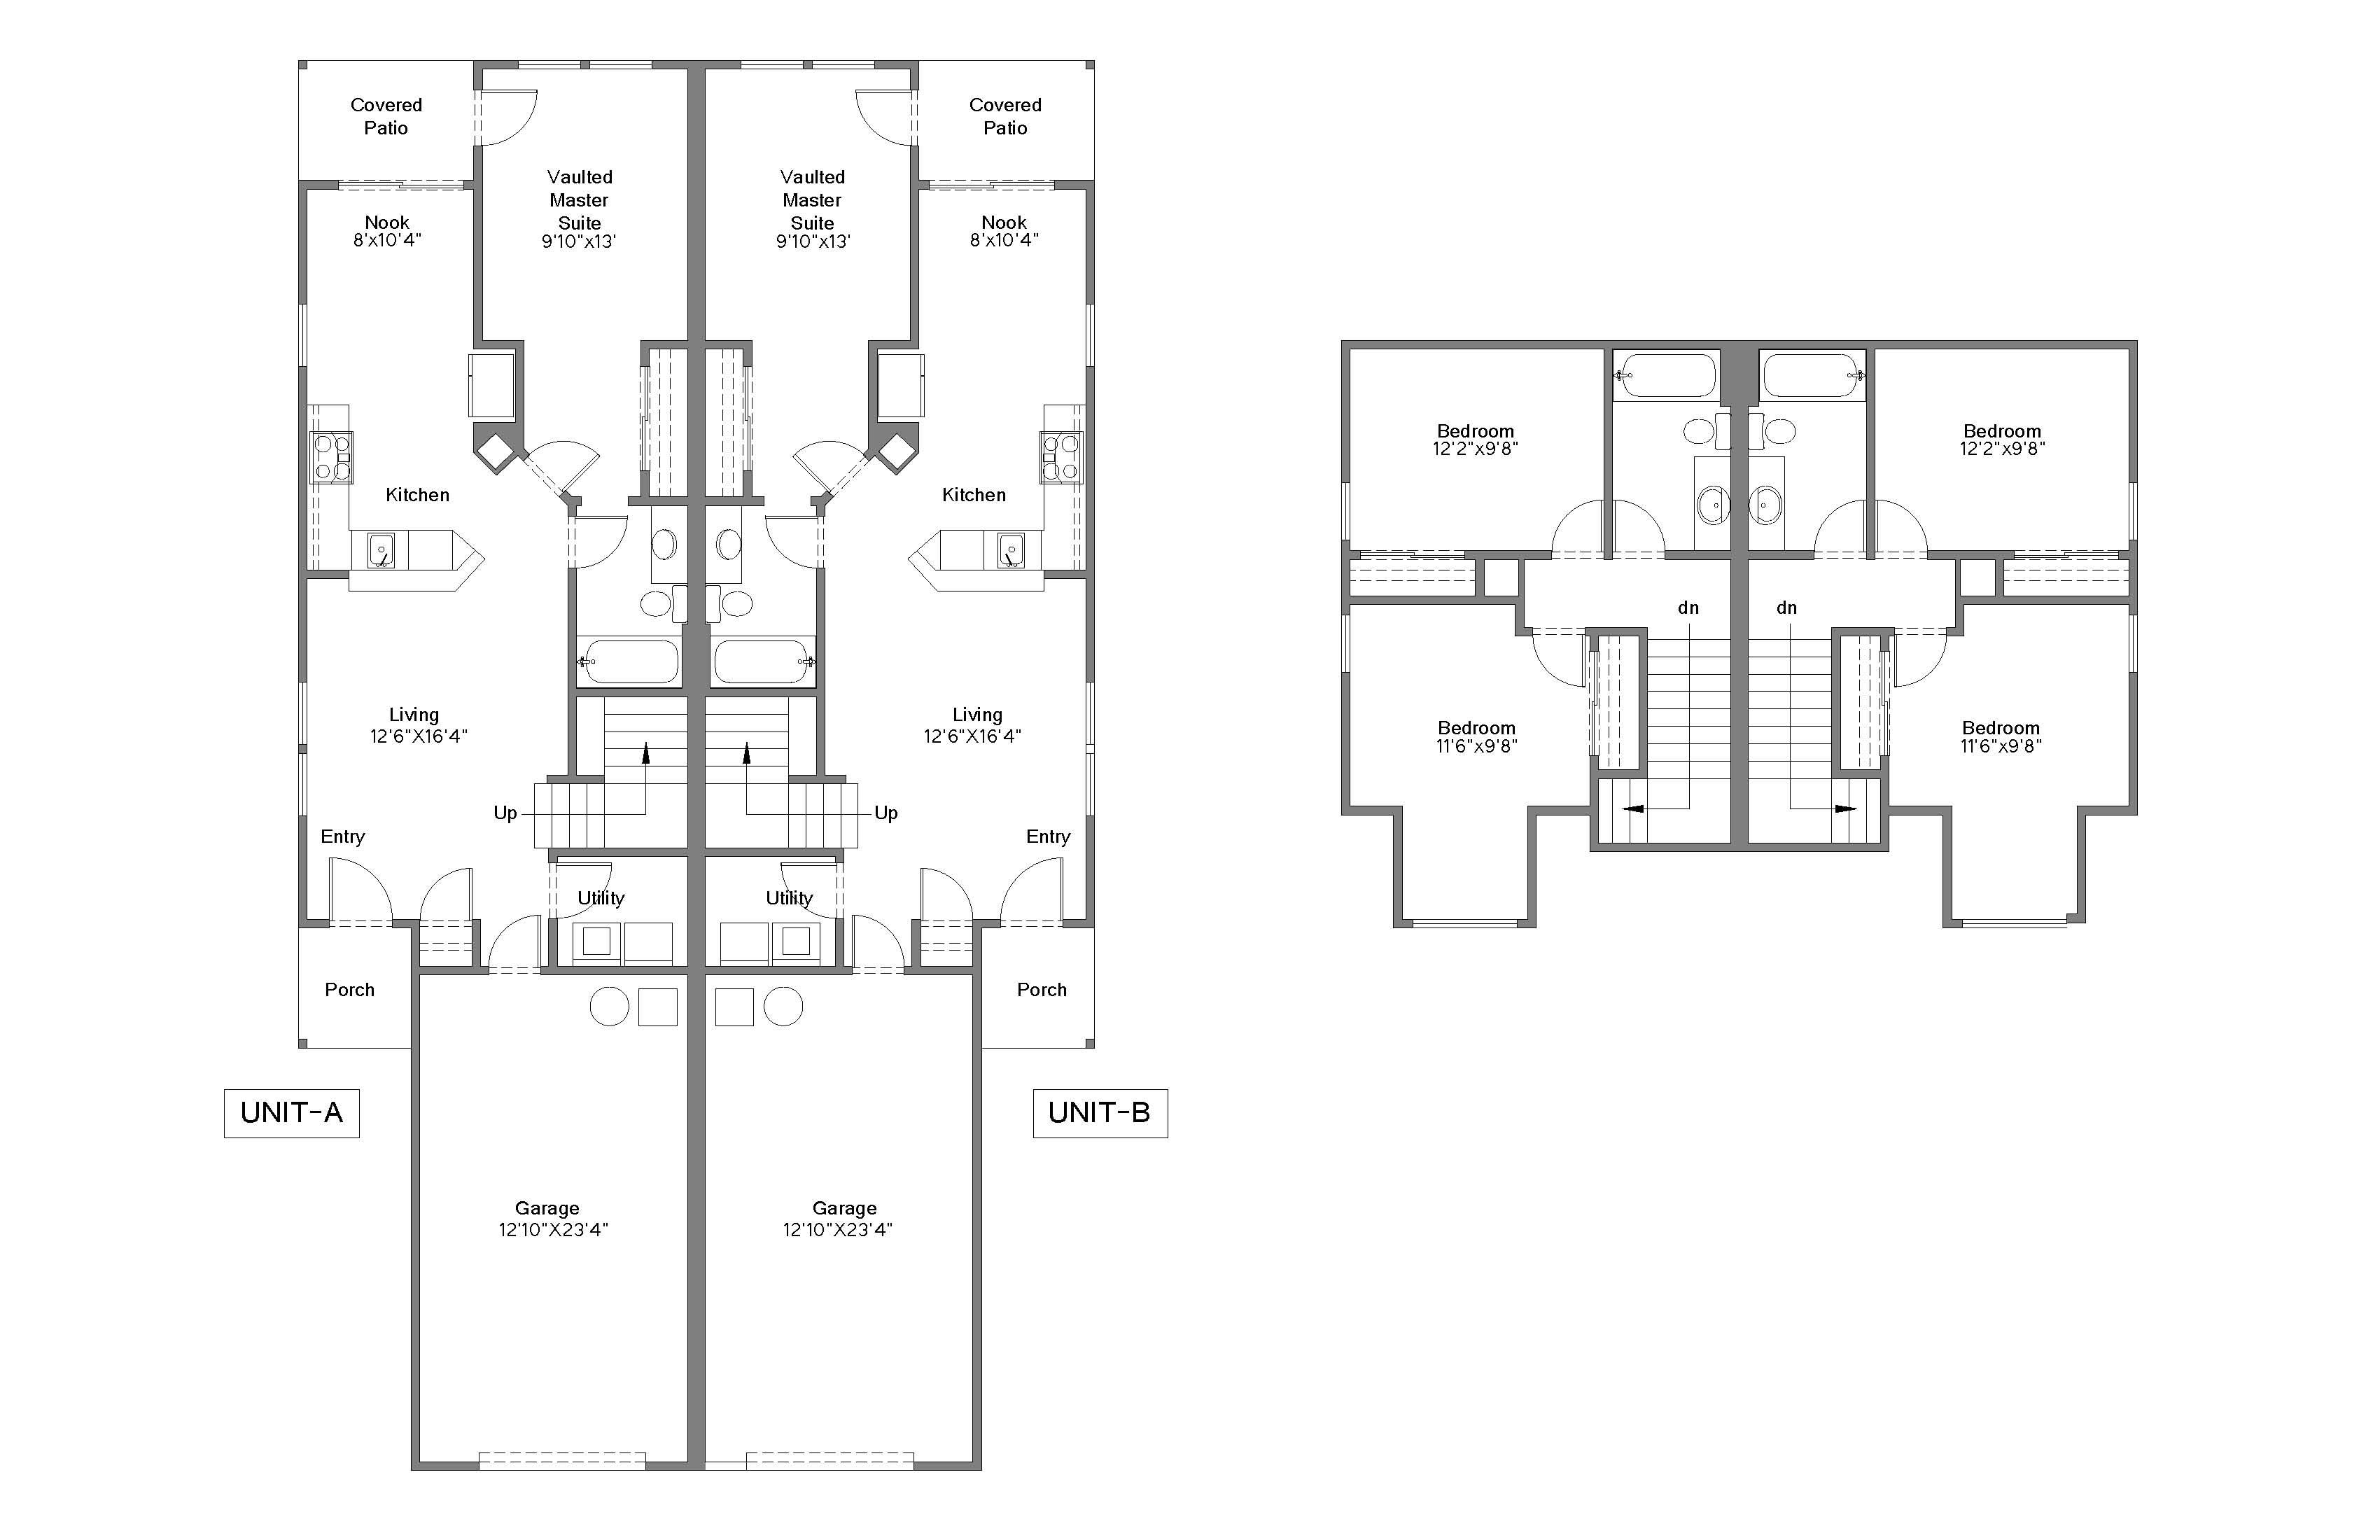 Architectural Floor Plan, Floor Plan With Autocad Drawings